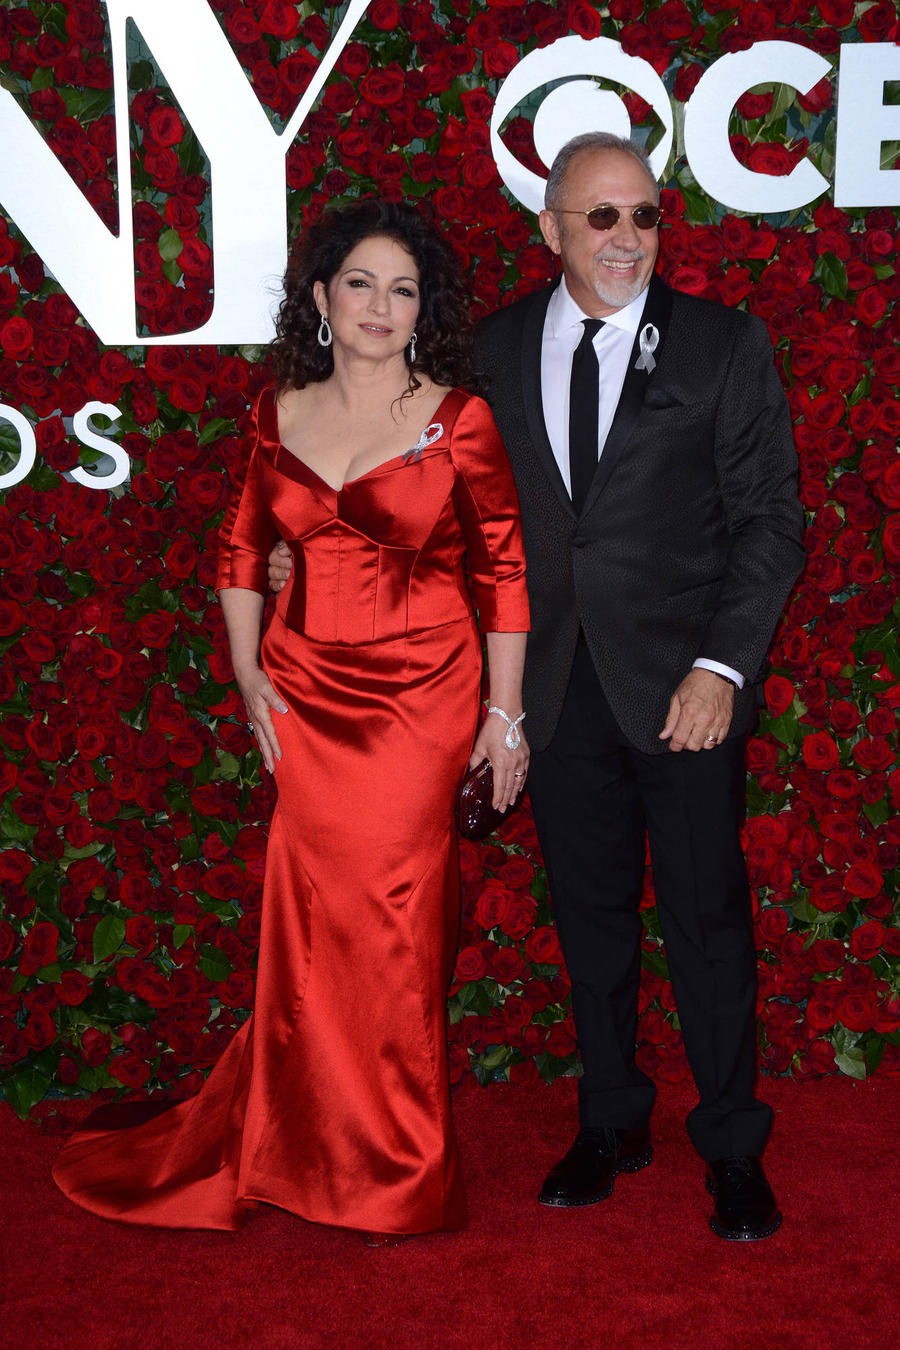 Gloria Estefan Hopes Musical Will 'Inspire' People Of Miami